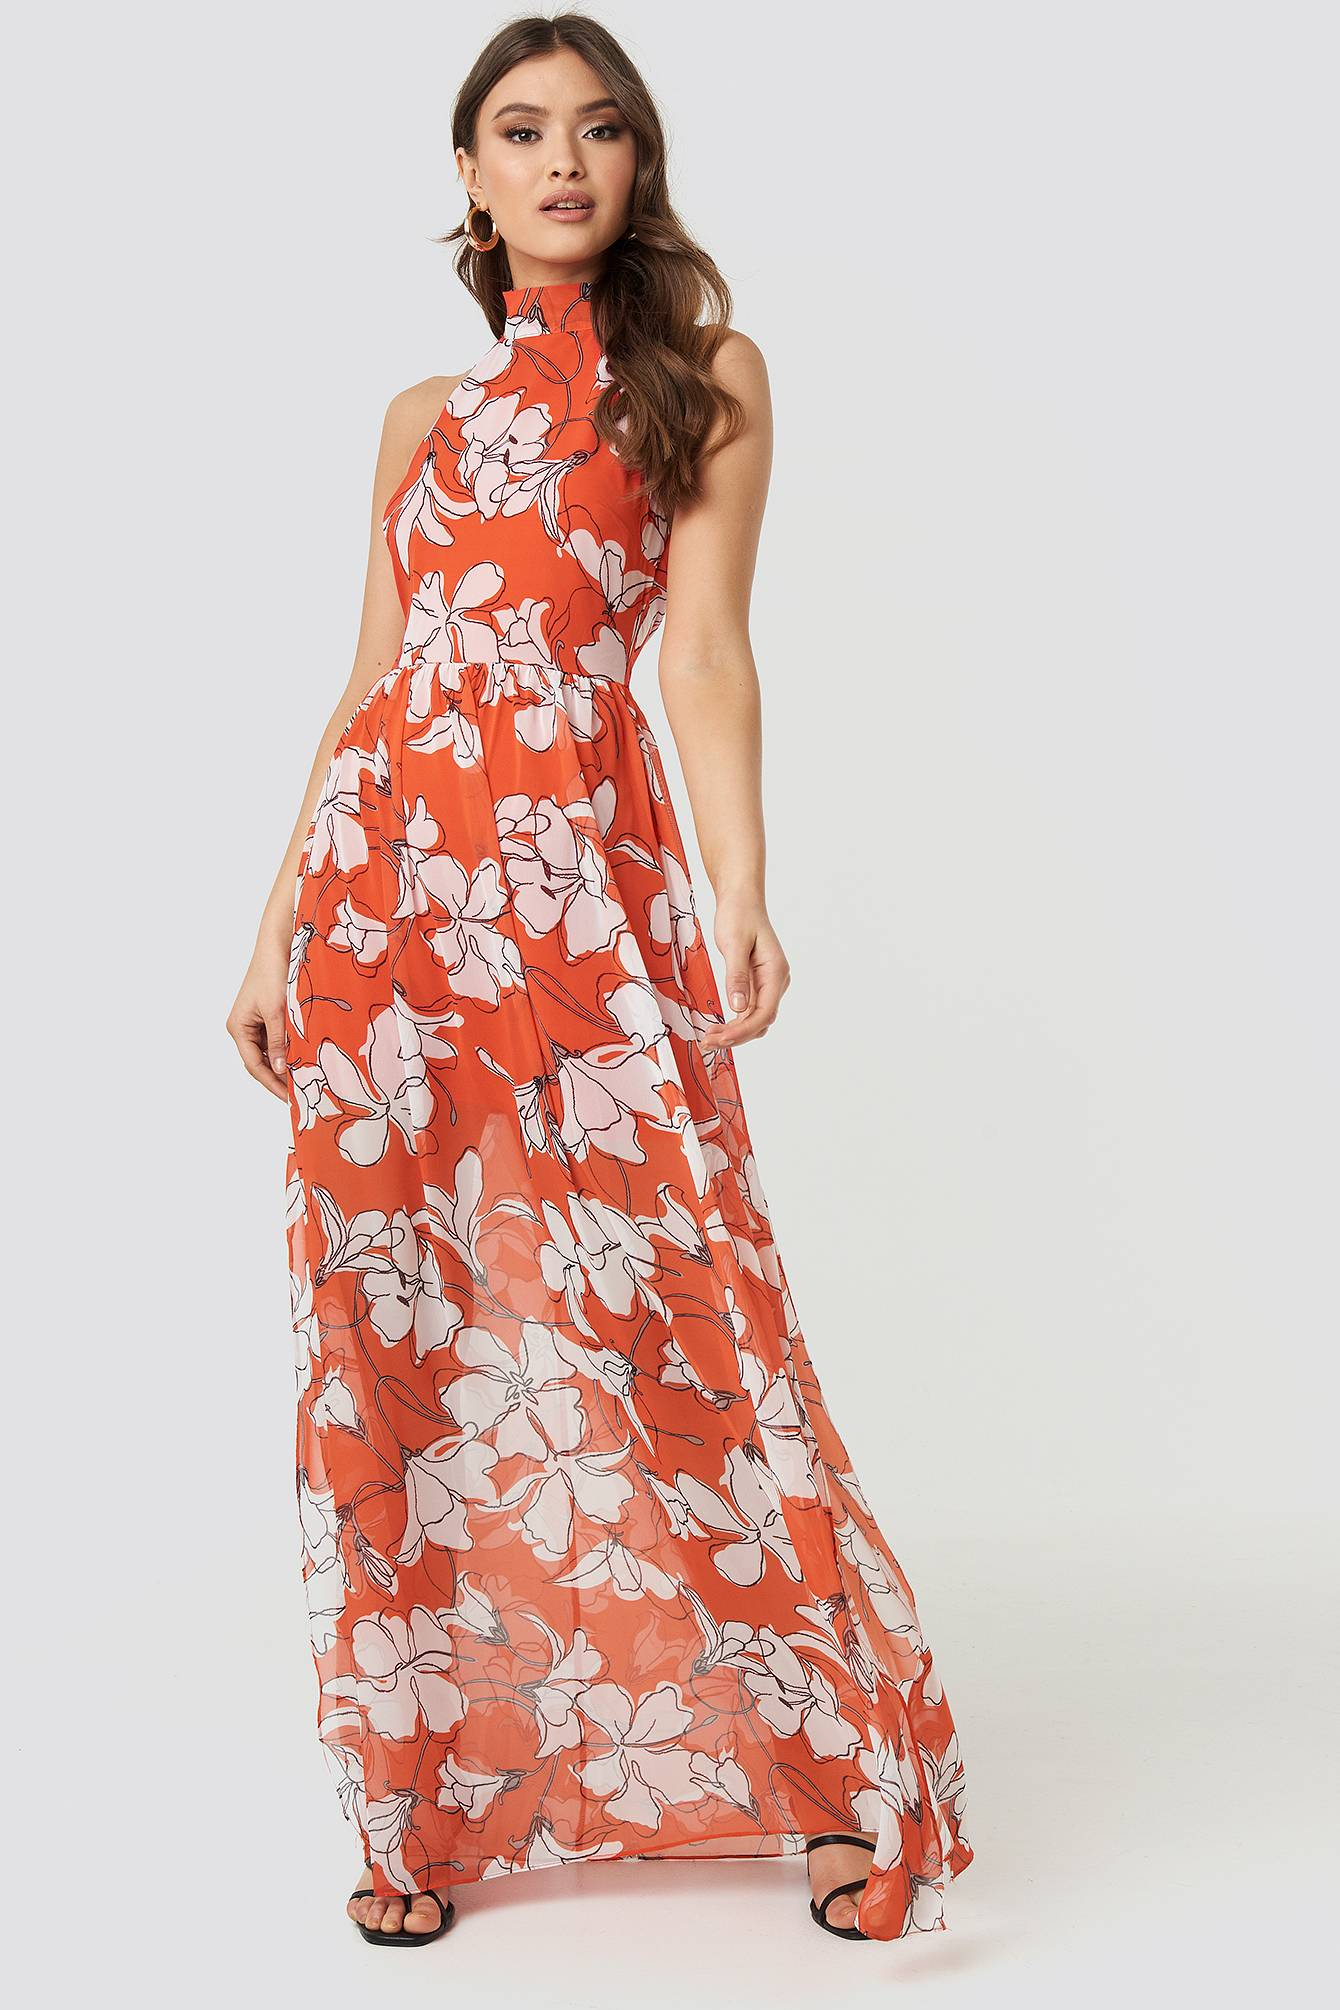 Image of Trendyol Flower Patterned Long Dress - Multicolor